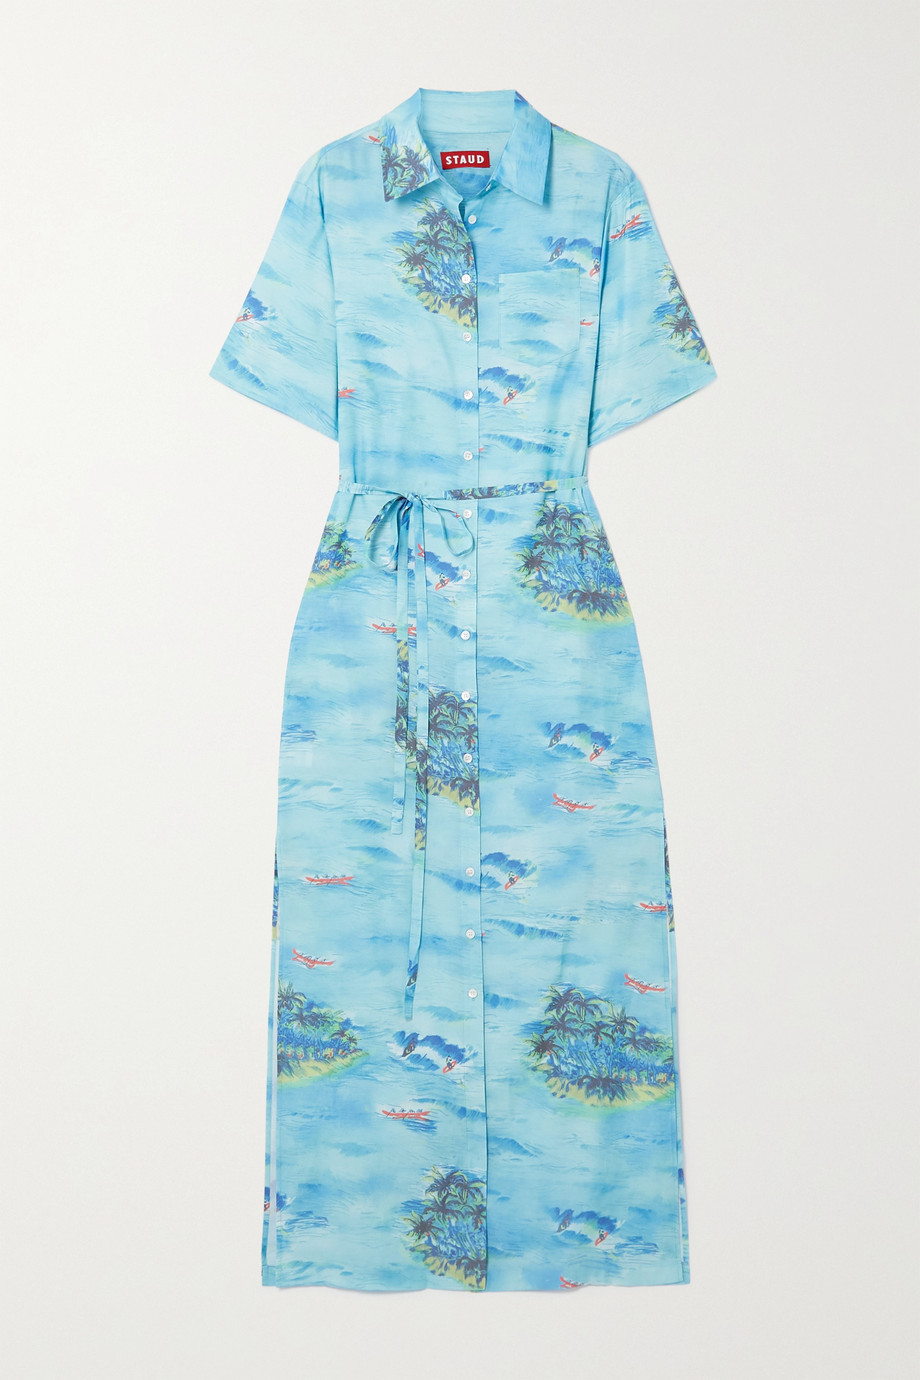 STAUD Printed woven shirt dress